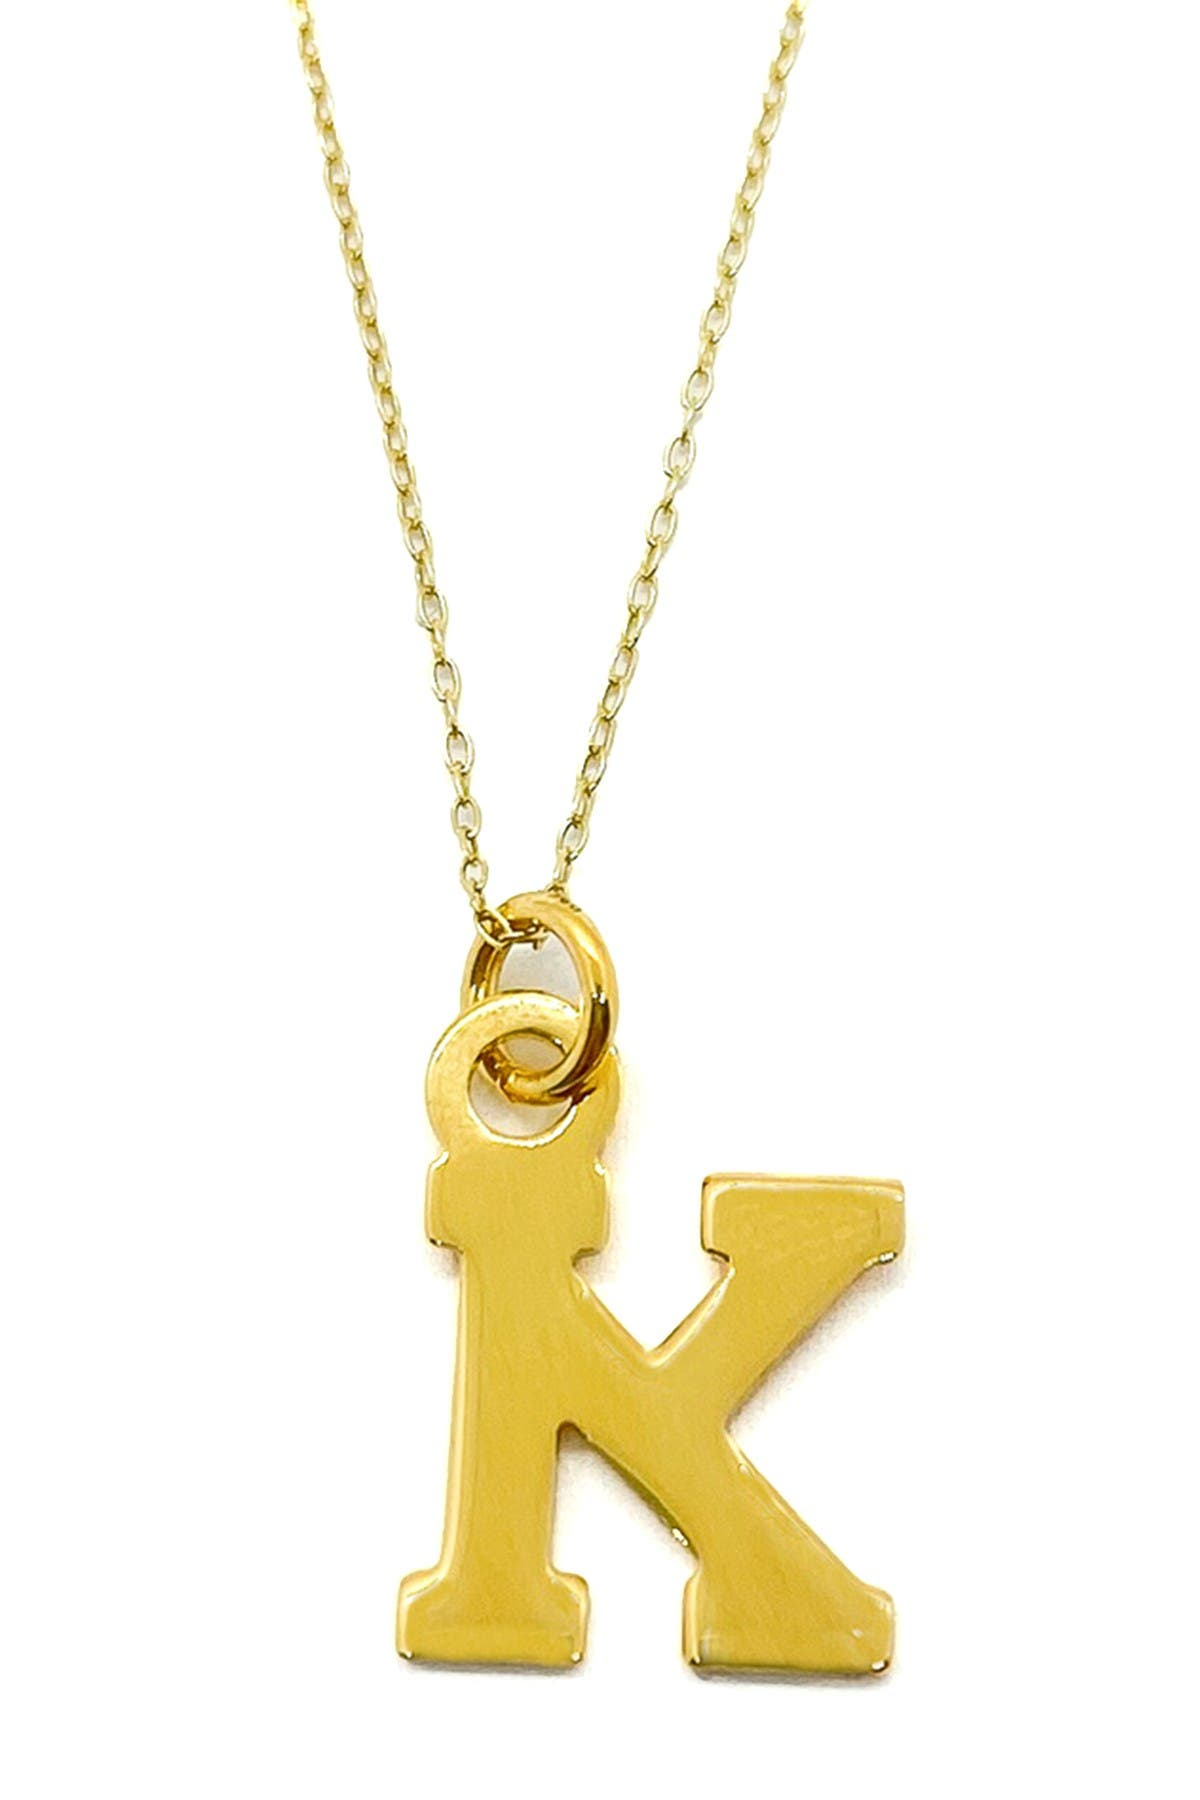 Image of Best Silver Inc. 18K Yellow Gold Plated Block Initial Necklace